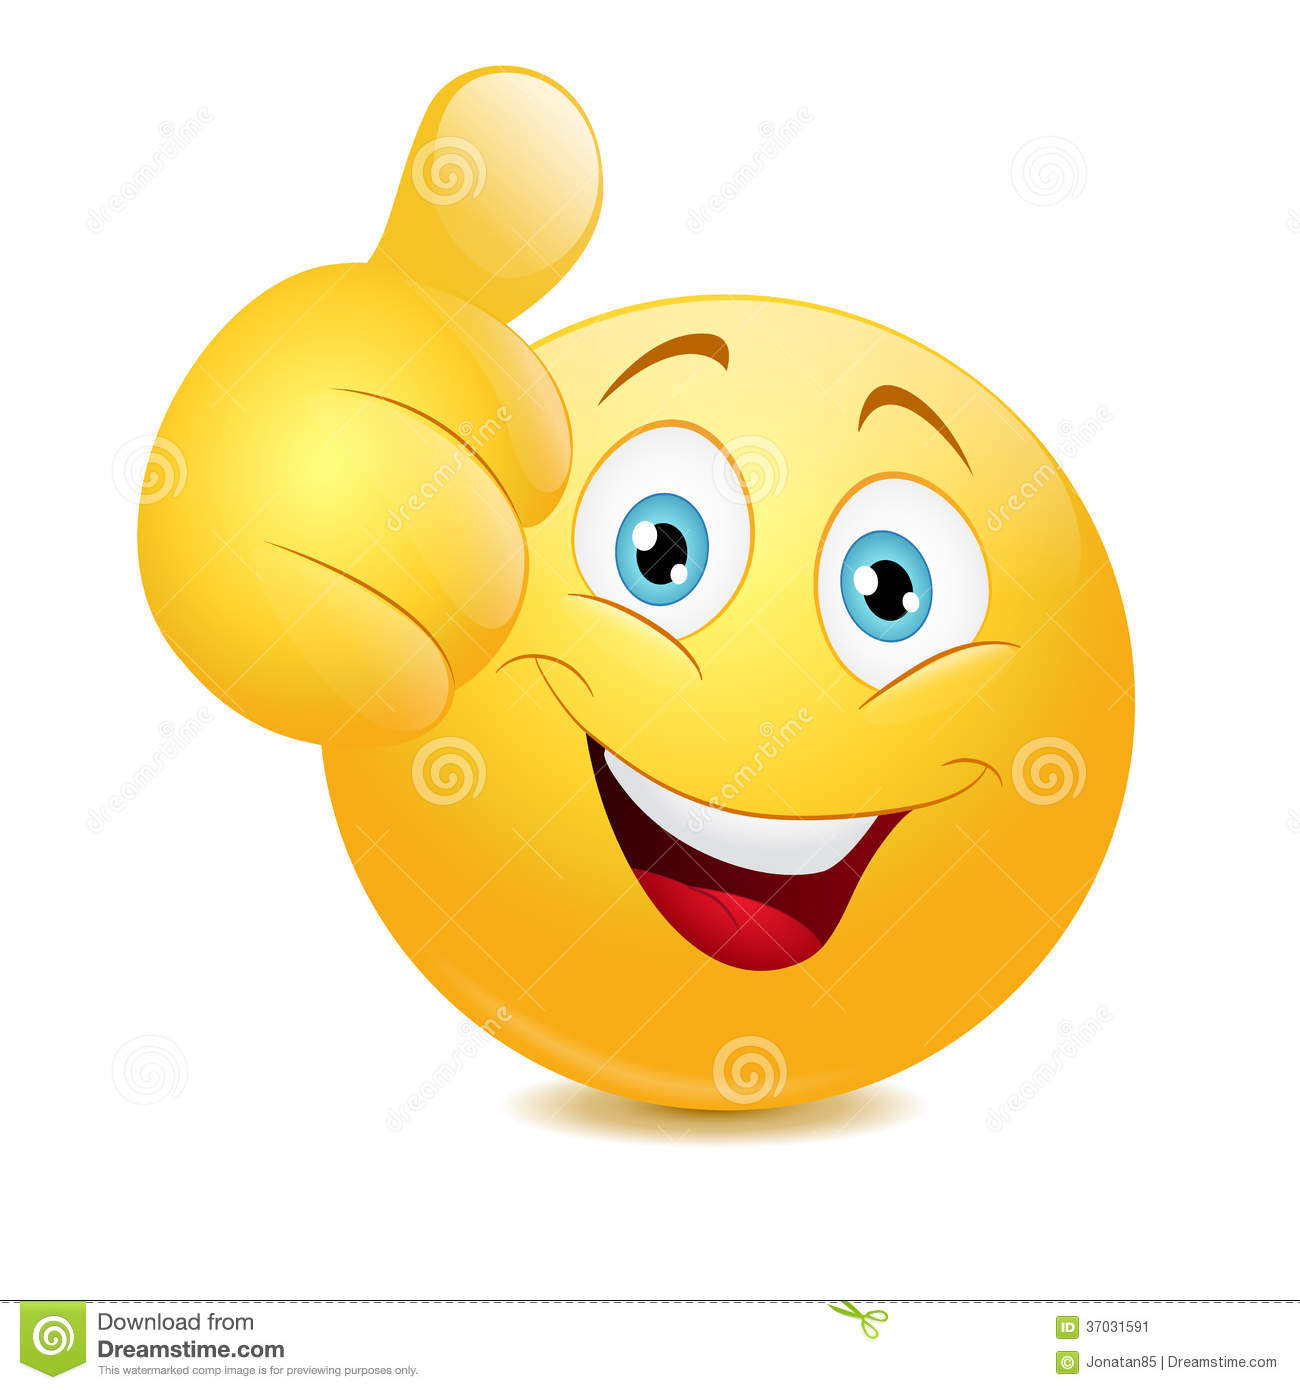 Emoticon Showing Thumb Up Stock Image - Image: 37031591